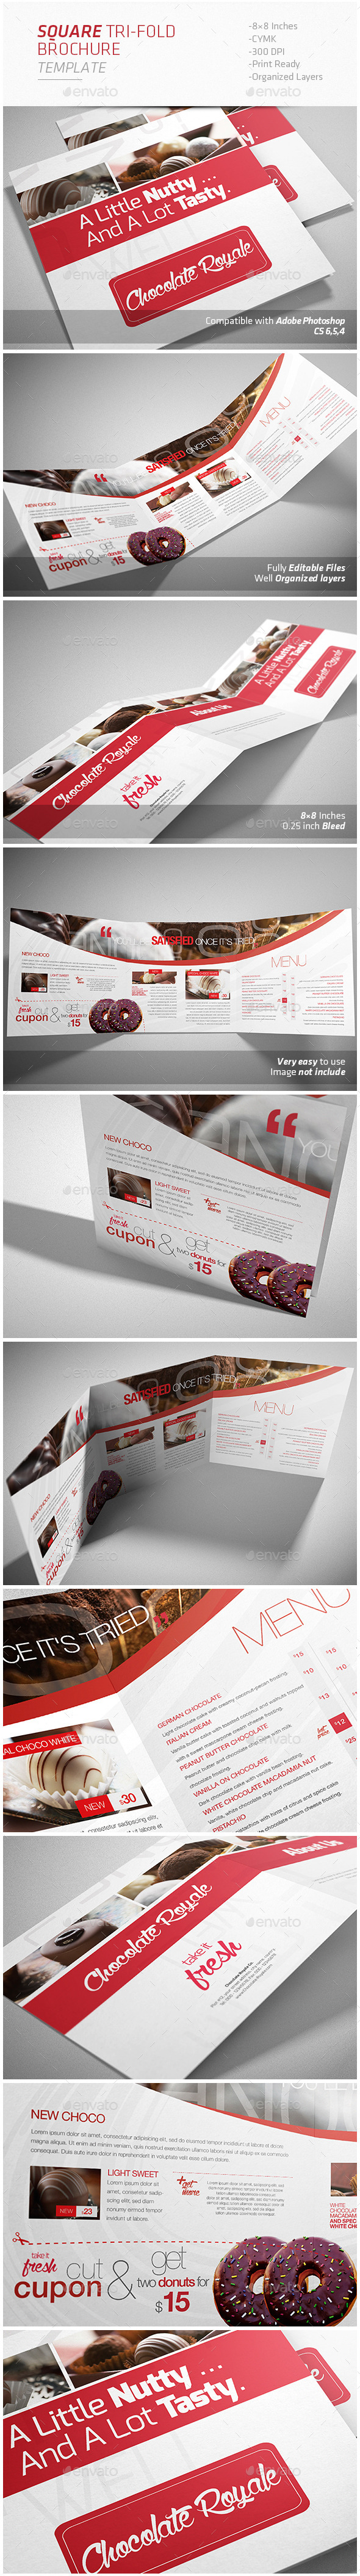 GraphicRiver Square Tri-fold Brochure 9128034